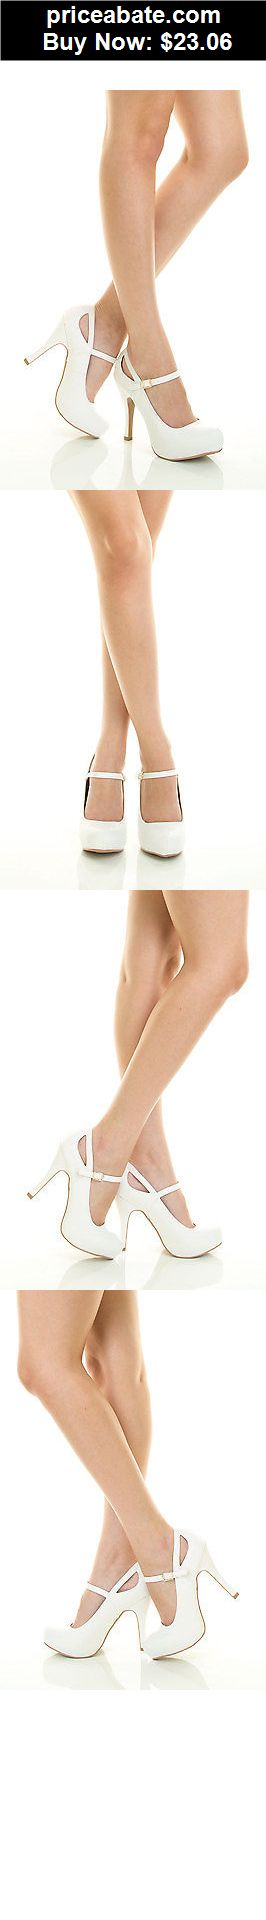 Wedding-Shoes-And-Bridal-Shoes: White Closed Toe Mary Jane Stiletto Heel Platform Bridal Wedding Dress Pump 5.5 - BUY IT NOW ONLY $23.06